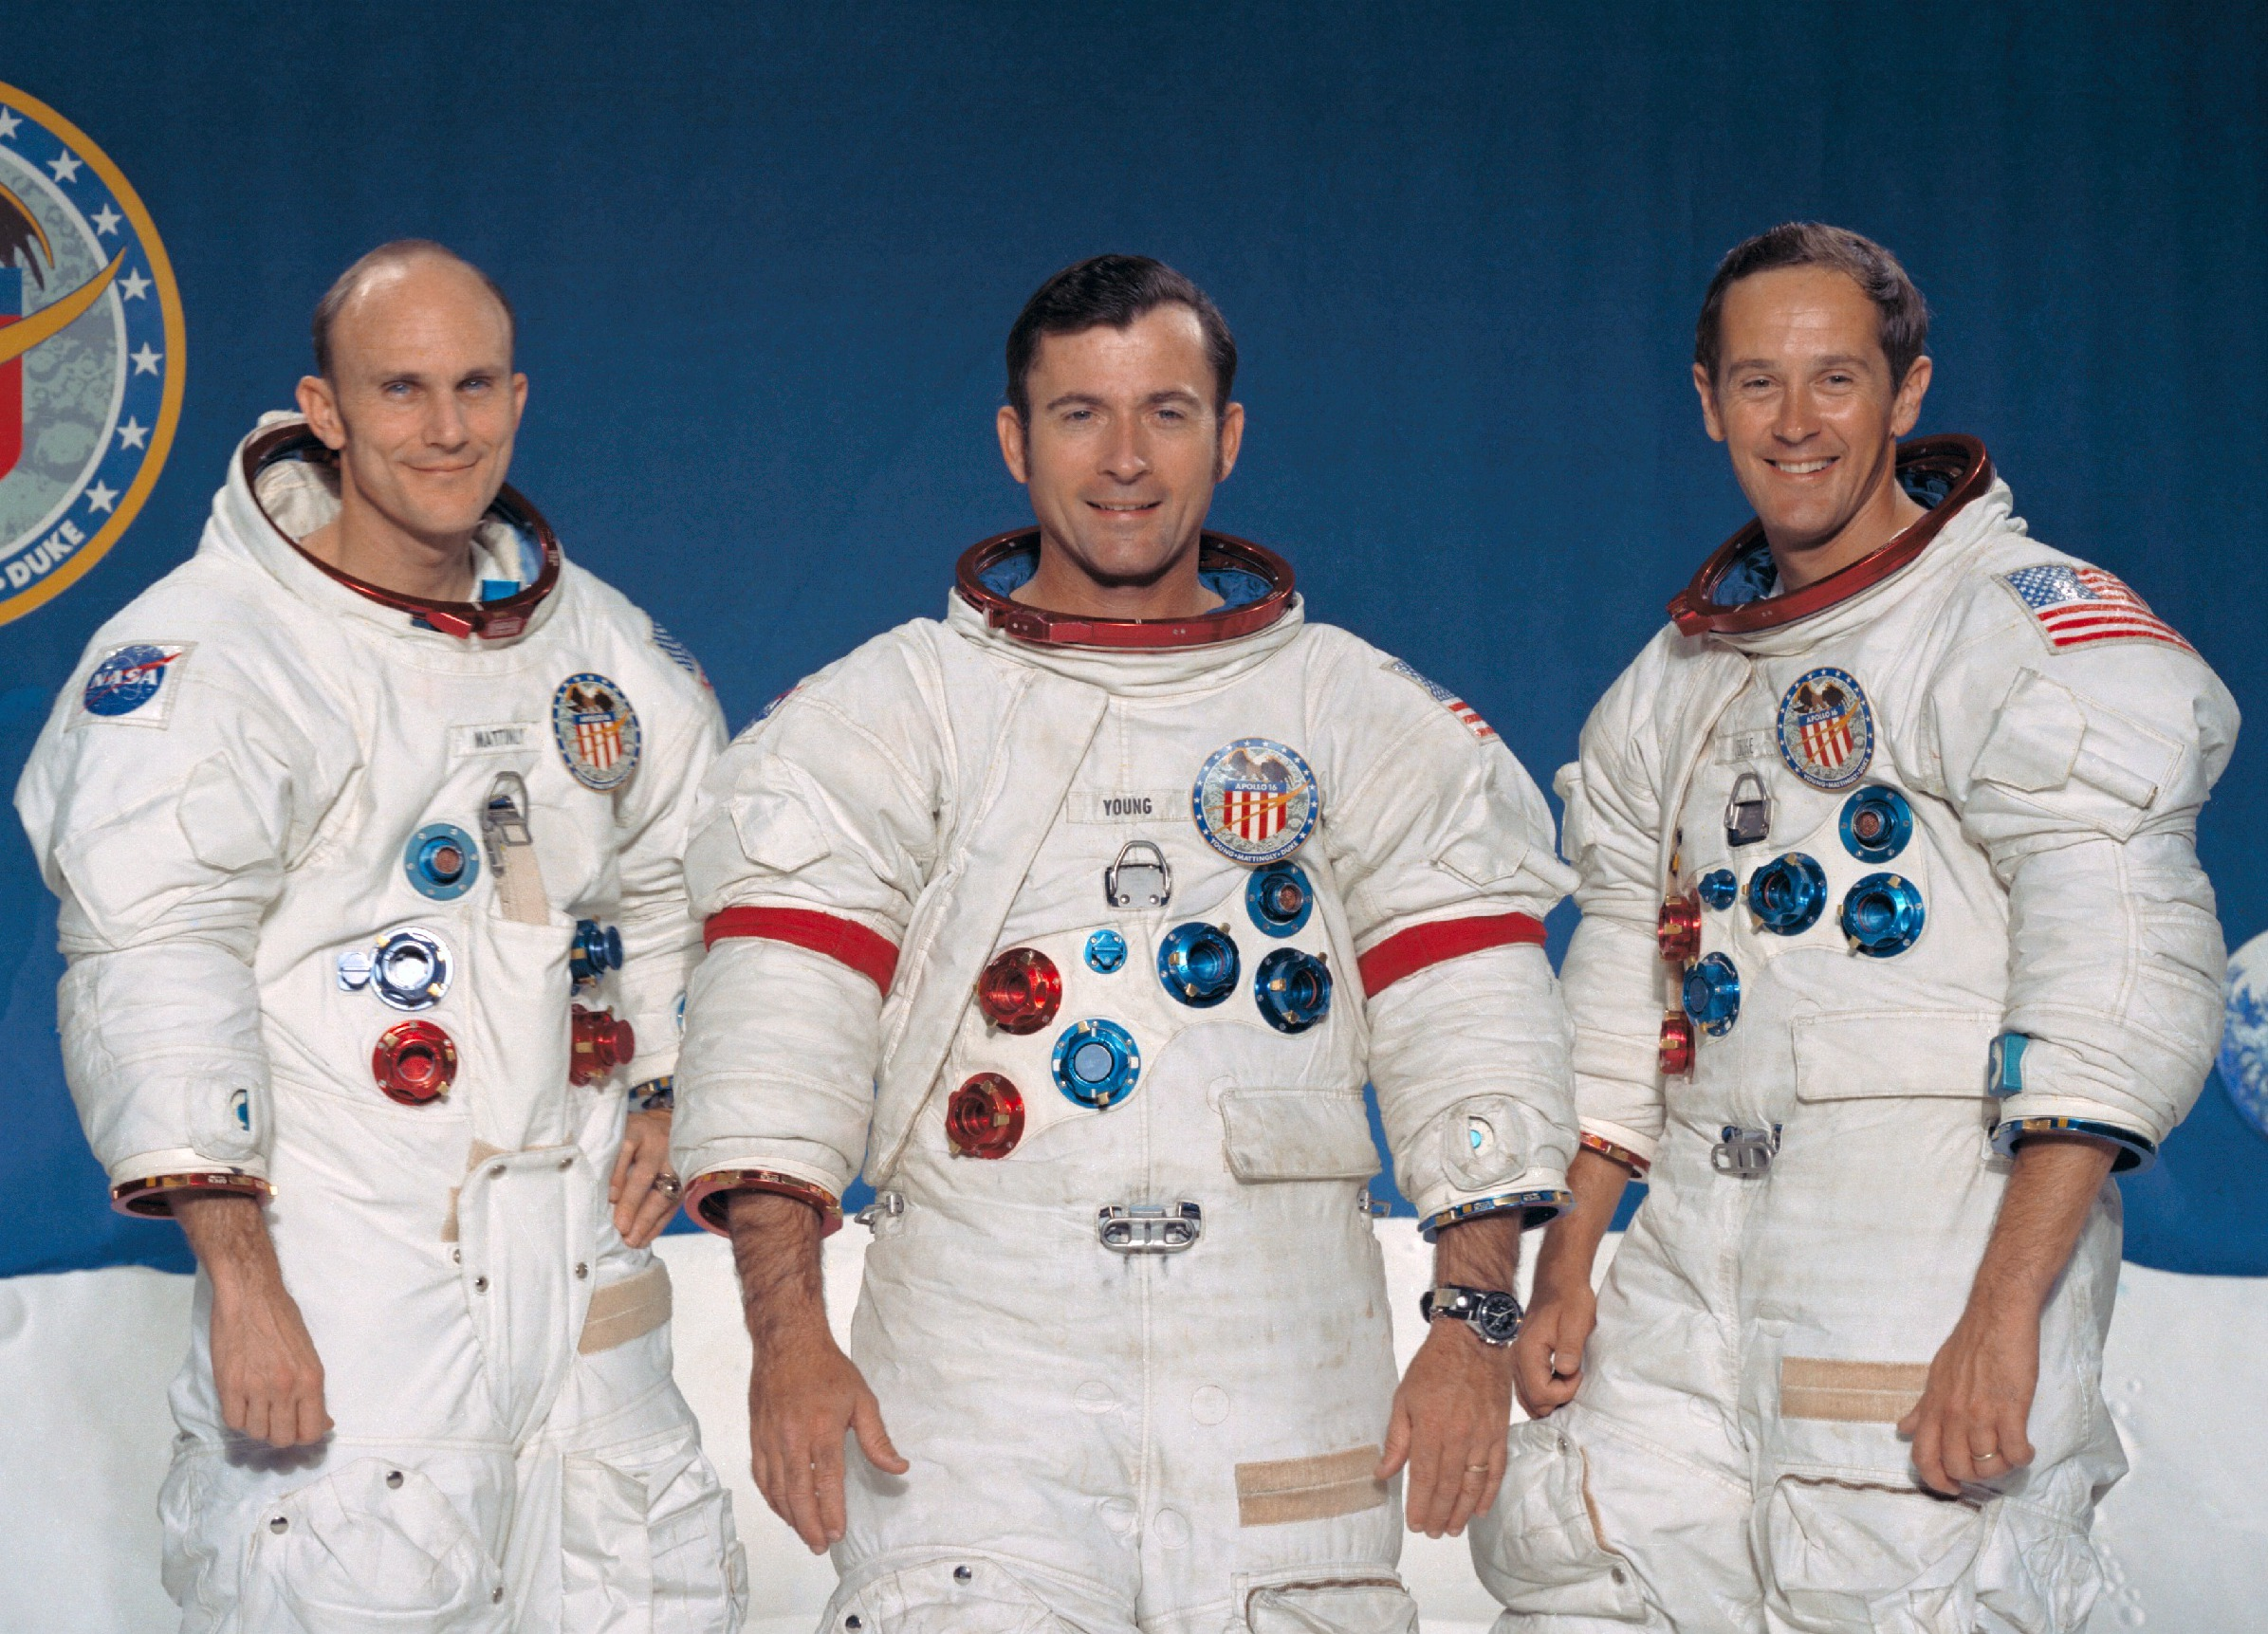 Apollo 16 crew: Thomas Mattingly, John Young & Charles Duke (courtesy of NASA)